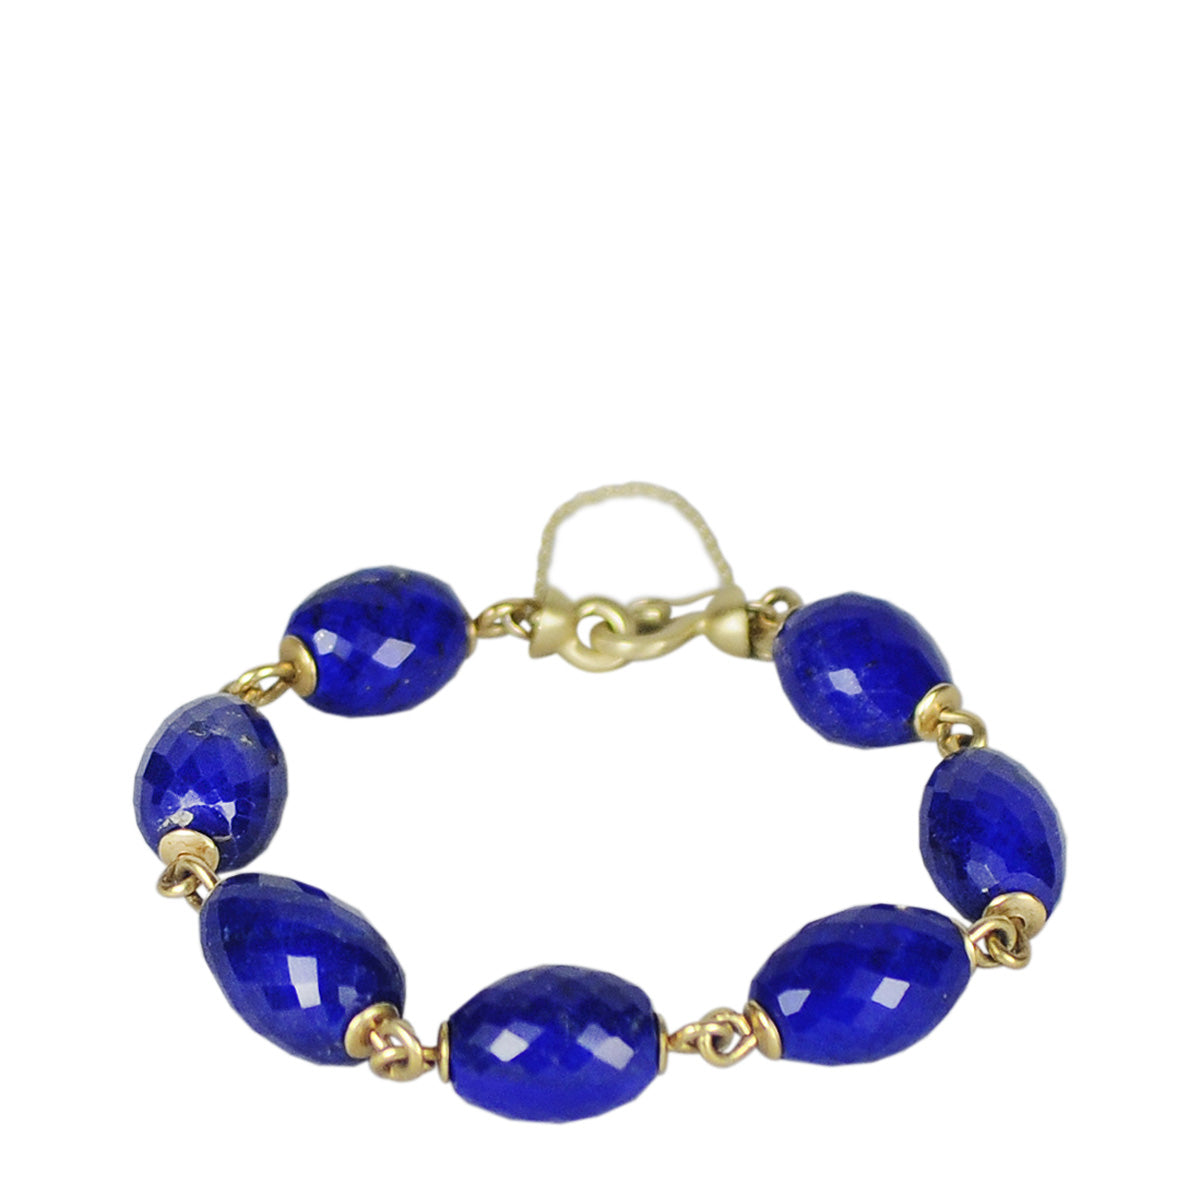 18K Gold Faceted Oval Lapis Bead Link Bracelet